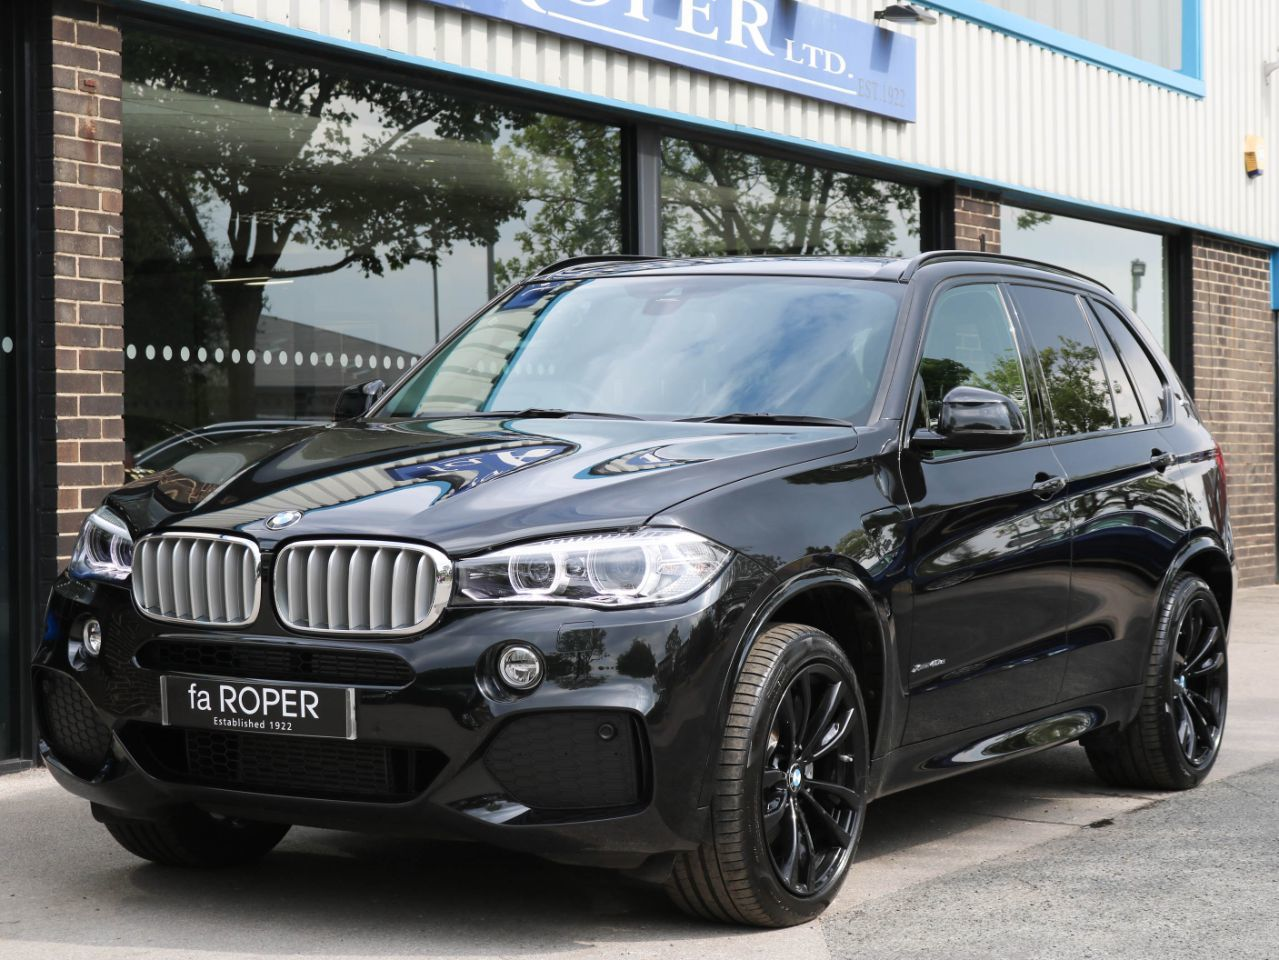 BMW X5 2.0 xDrive40e M Sport Auto PHEV Estate Petrol / Electric Hybrid Sapphire Black MetallicBMW X5 2.0 xDrive40e M Sport Auto PHEV Estate Petrol / Electric Hybrid Sapphire Black Metallic at fa Roper Ltd Bradford